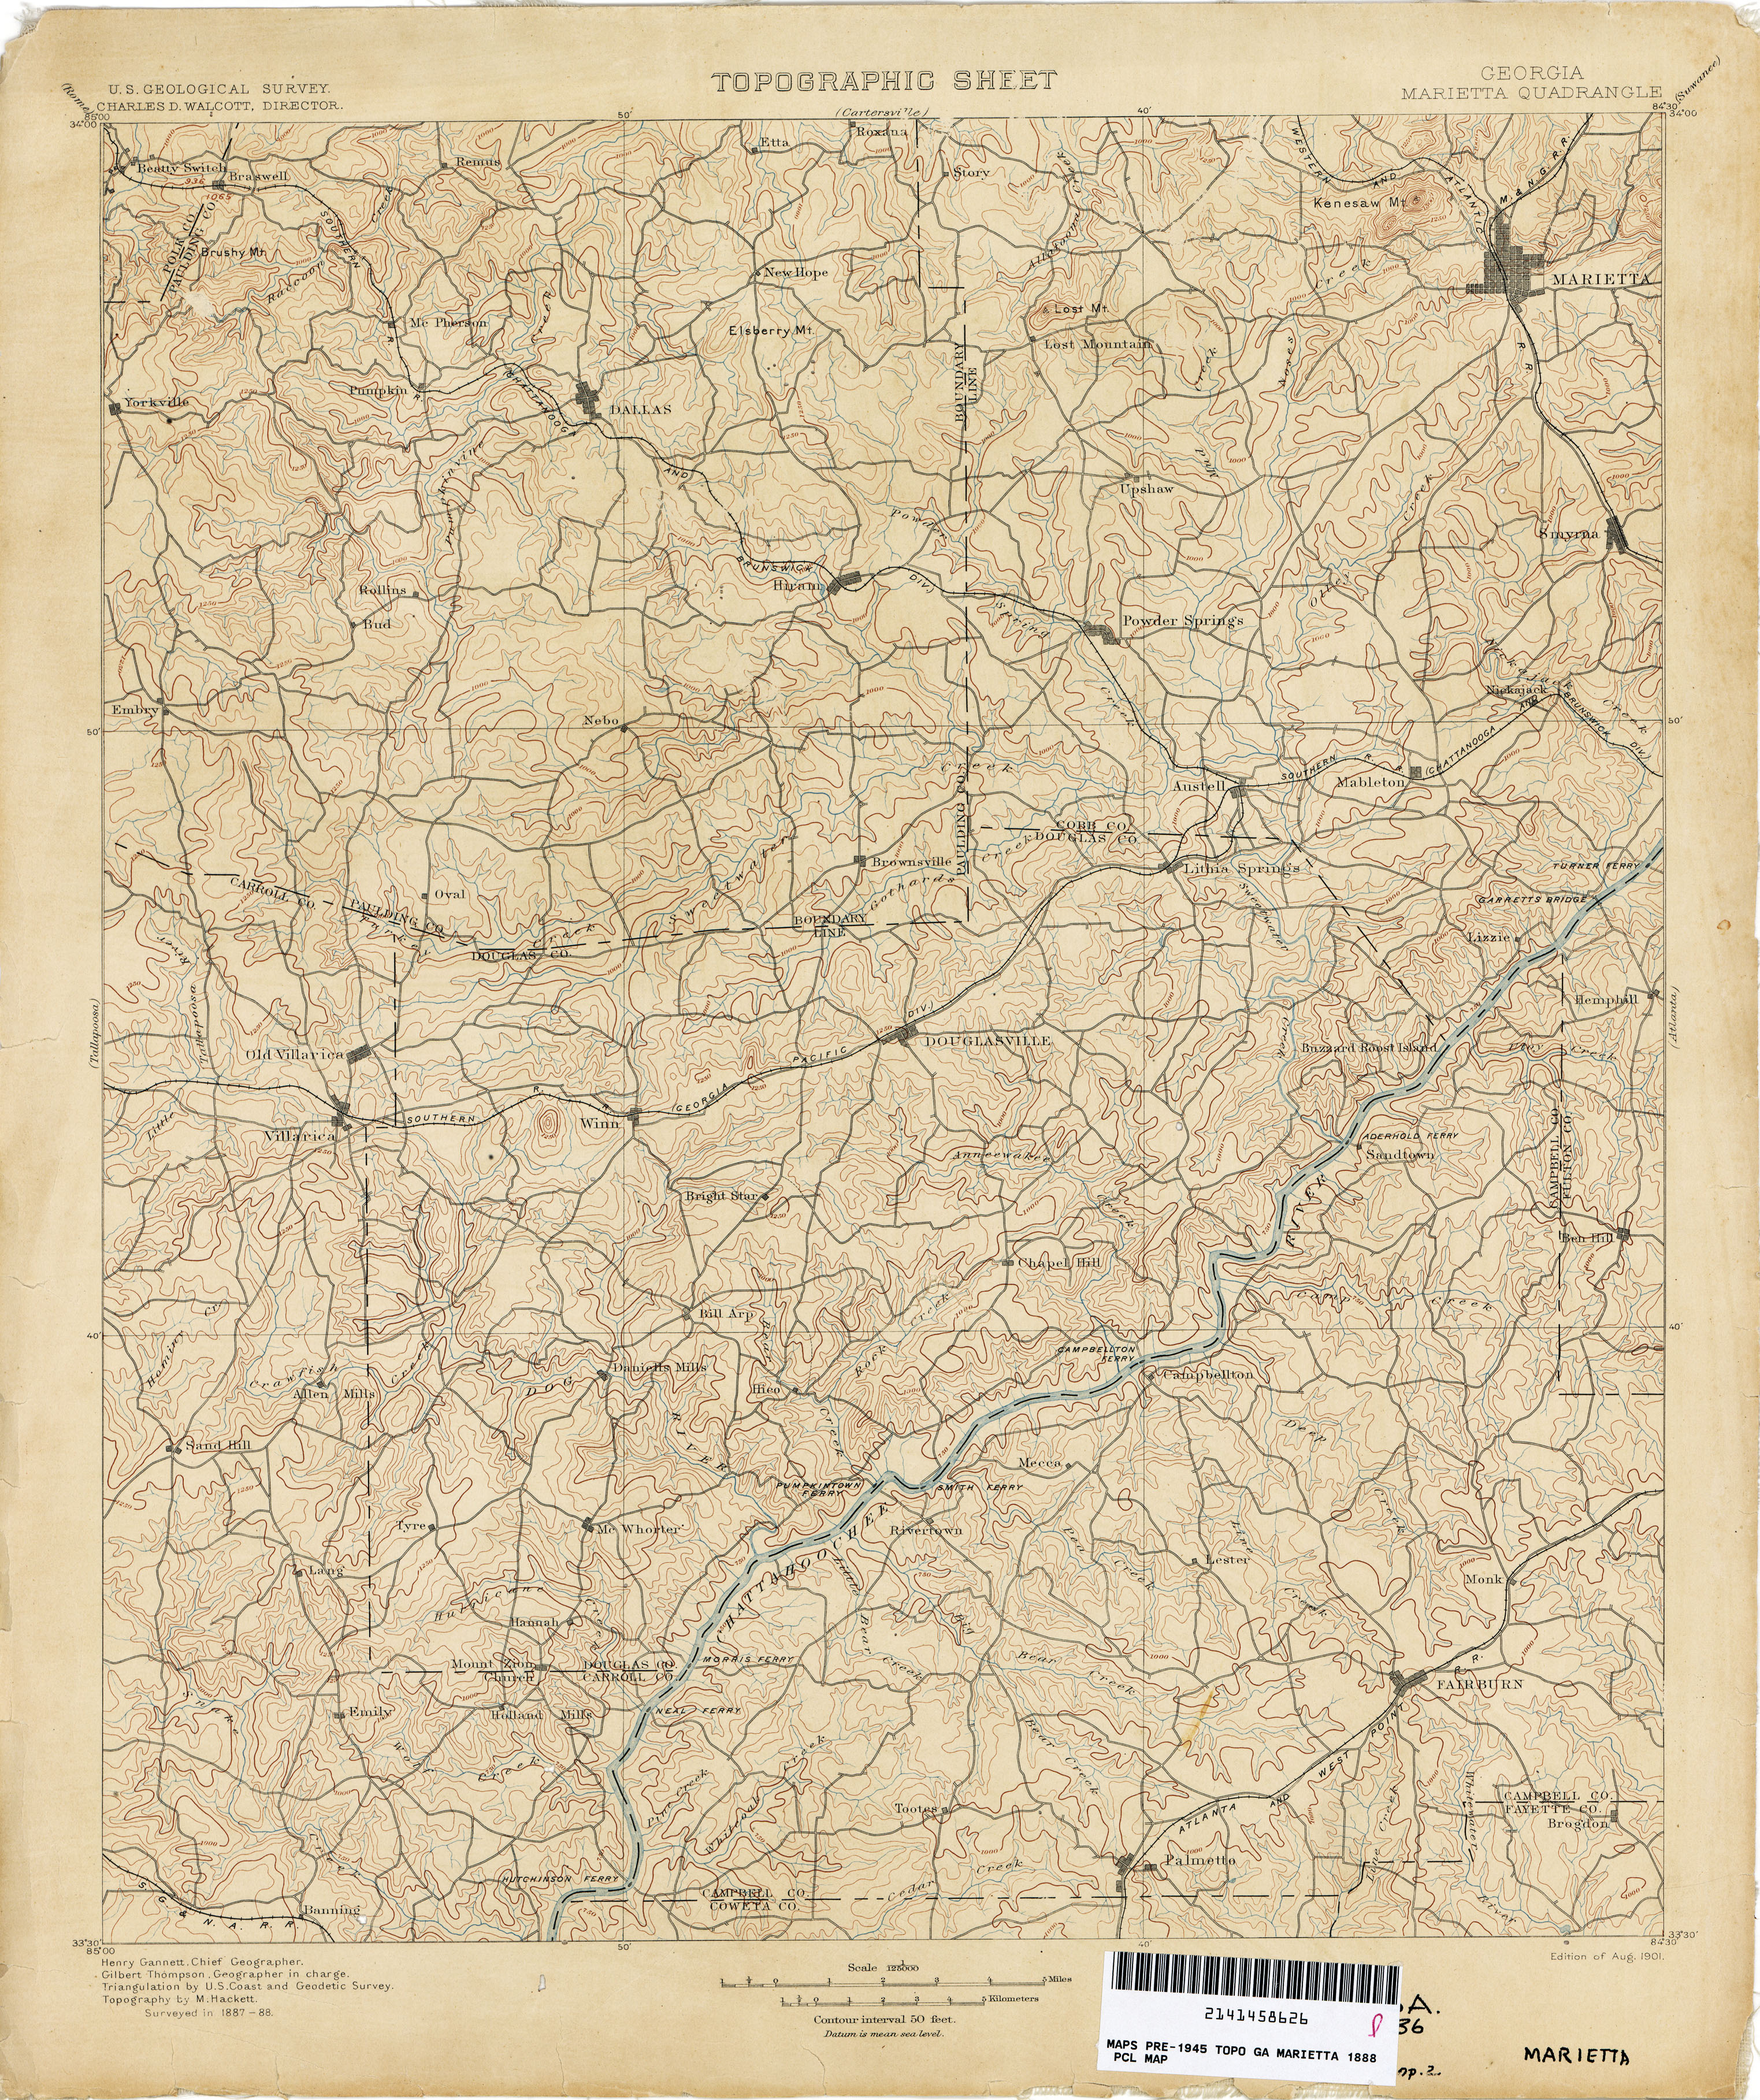 Georgia Historical Topographic Maps Perry Castaneda Map Collection